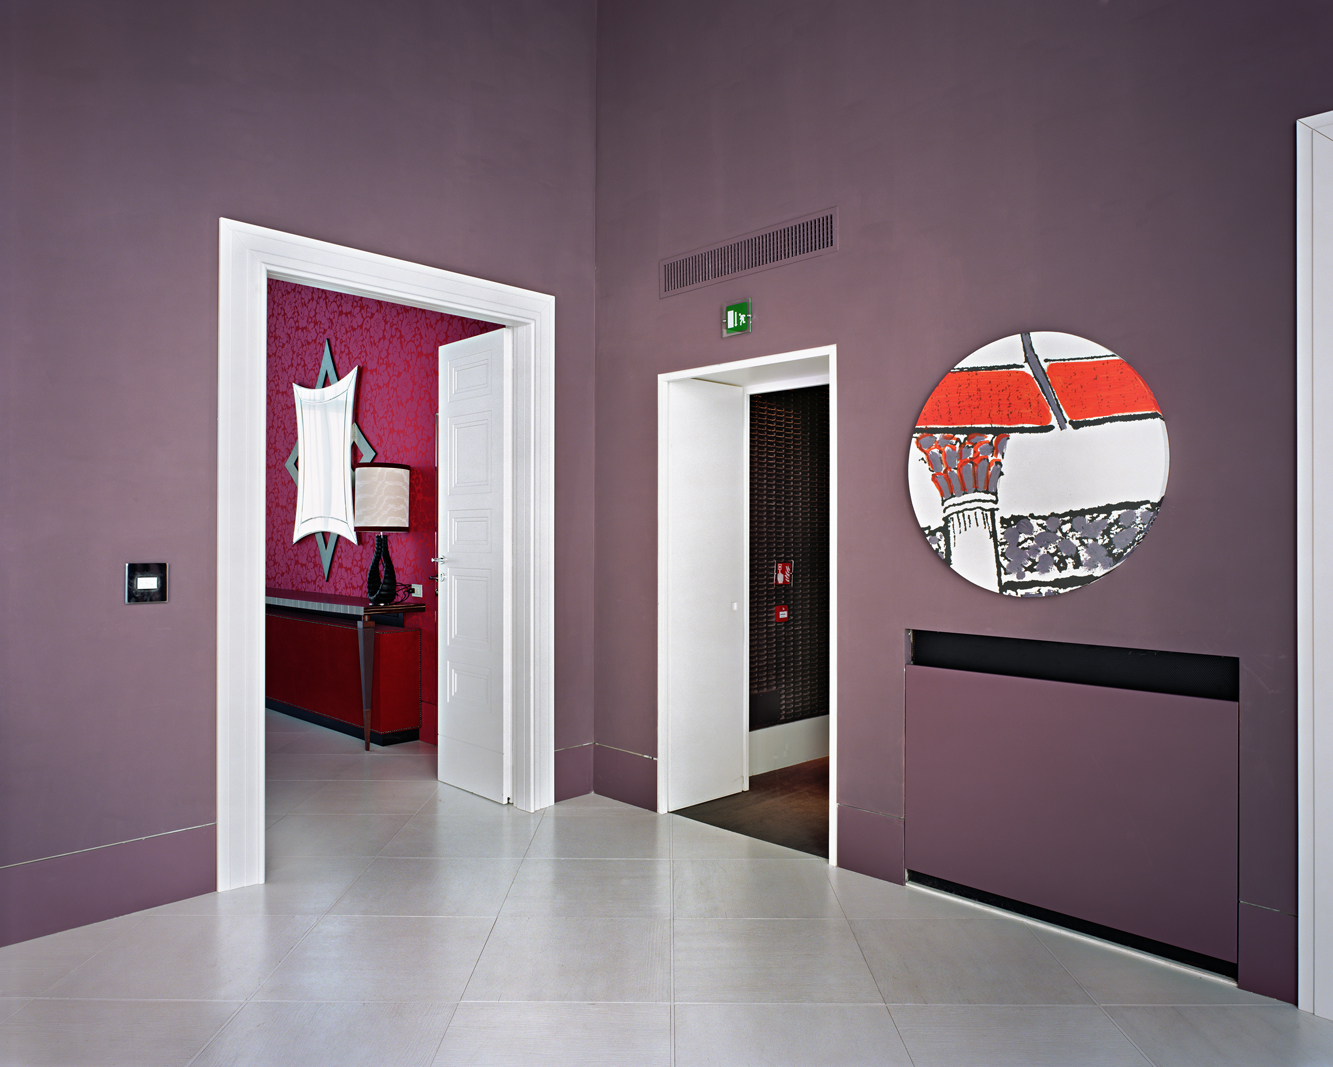 Lynne Cohen - Untitled (Circle Mirror - Mauve Wall), 2011